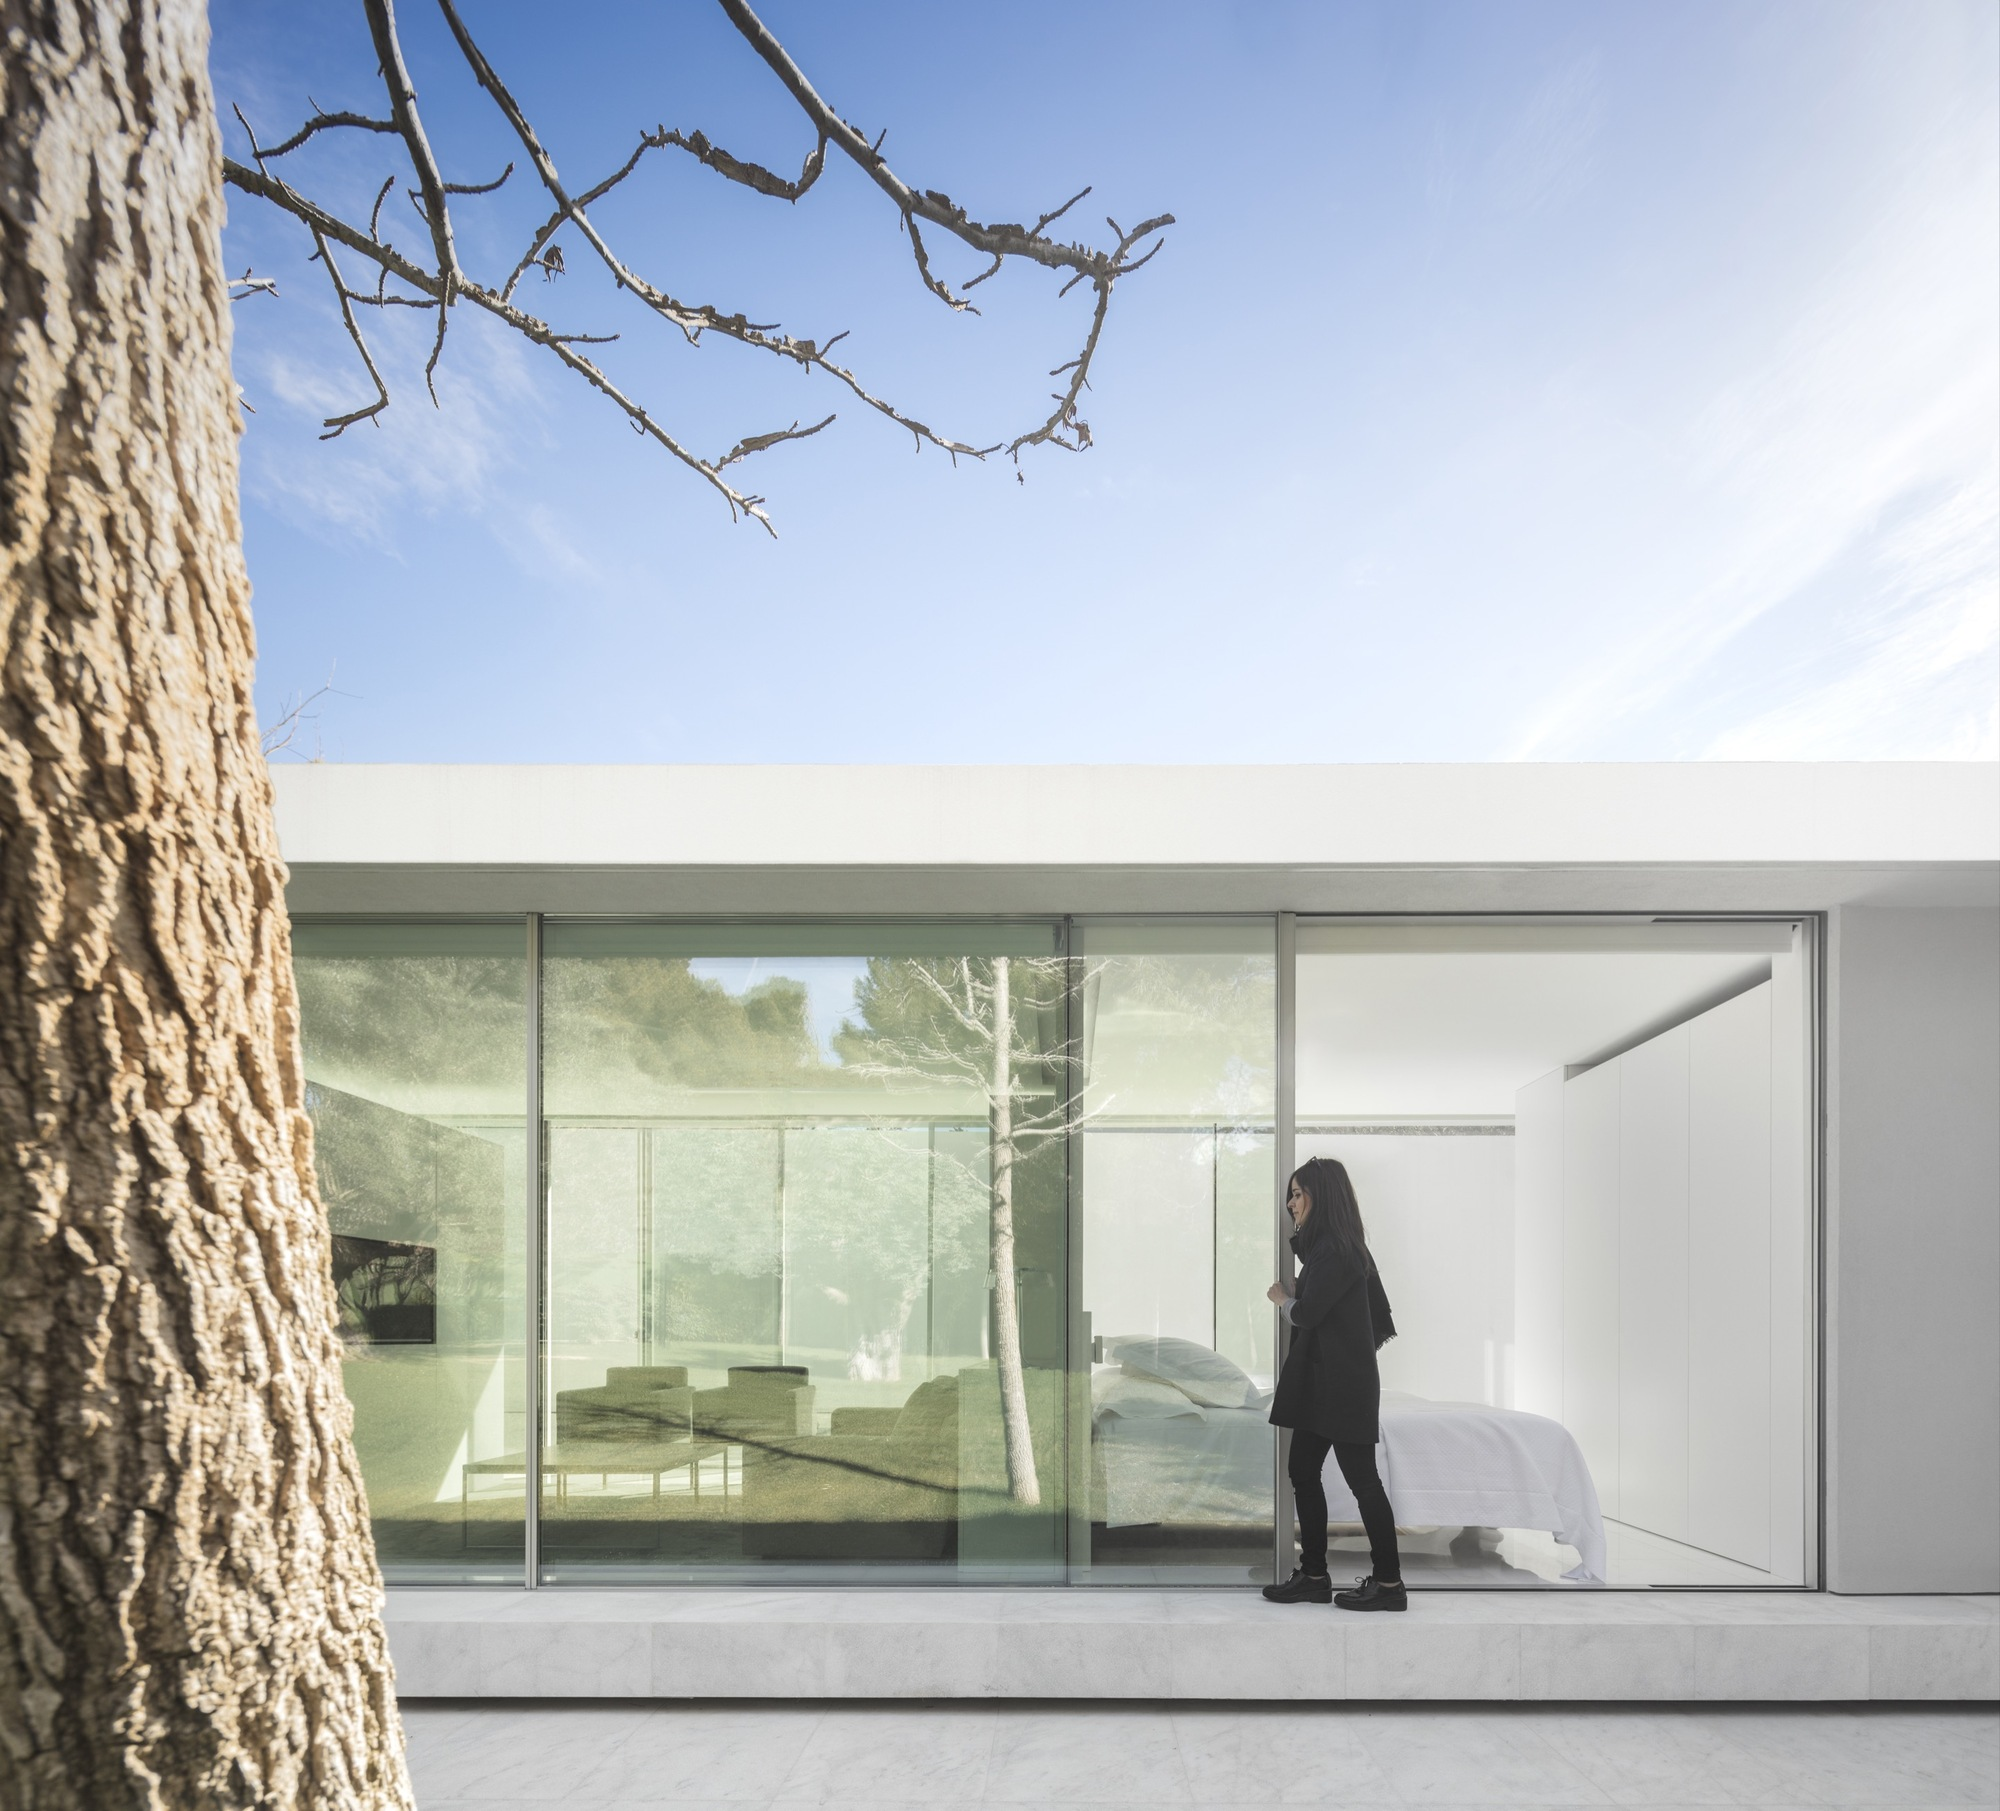 Gallery of guests pavilion fran silvestre arquitectos 38 - Fran silvestre arquitectos ...